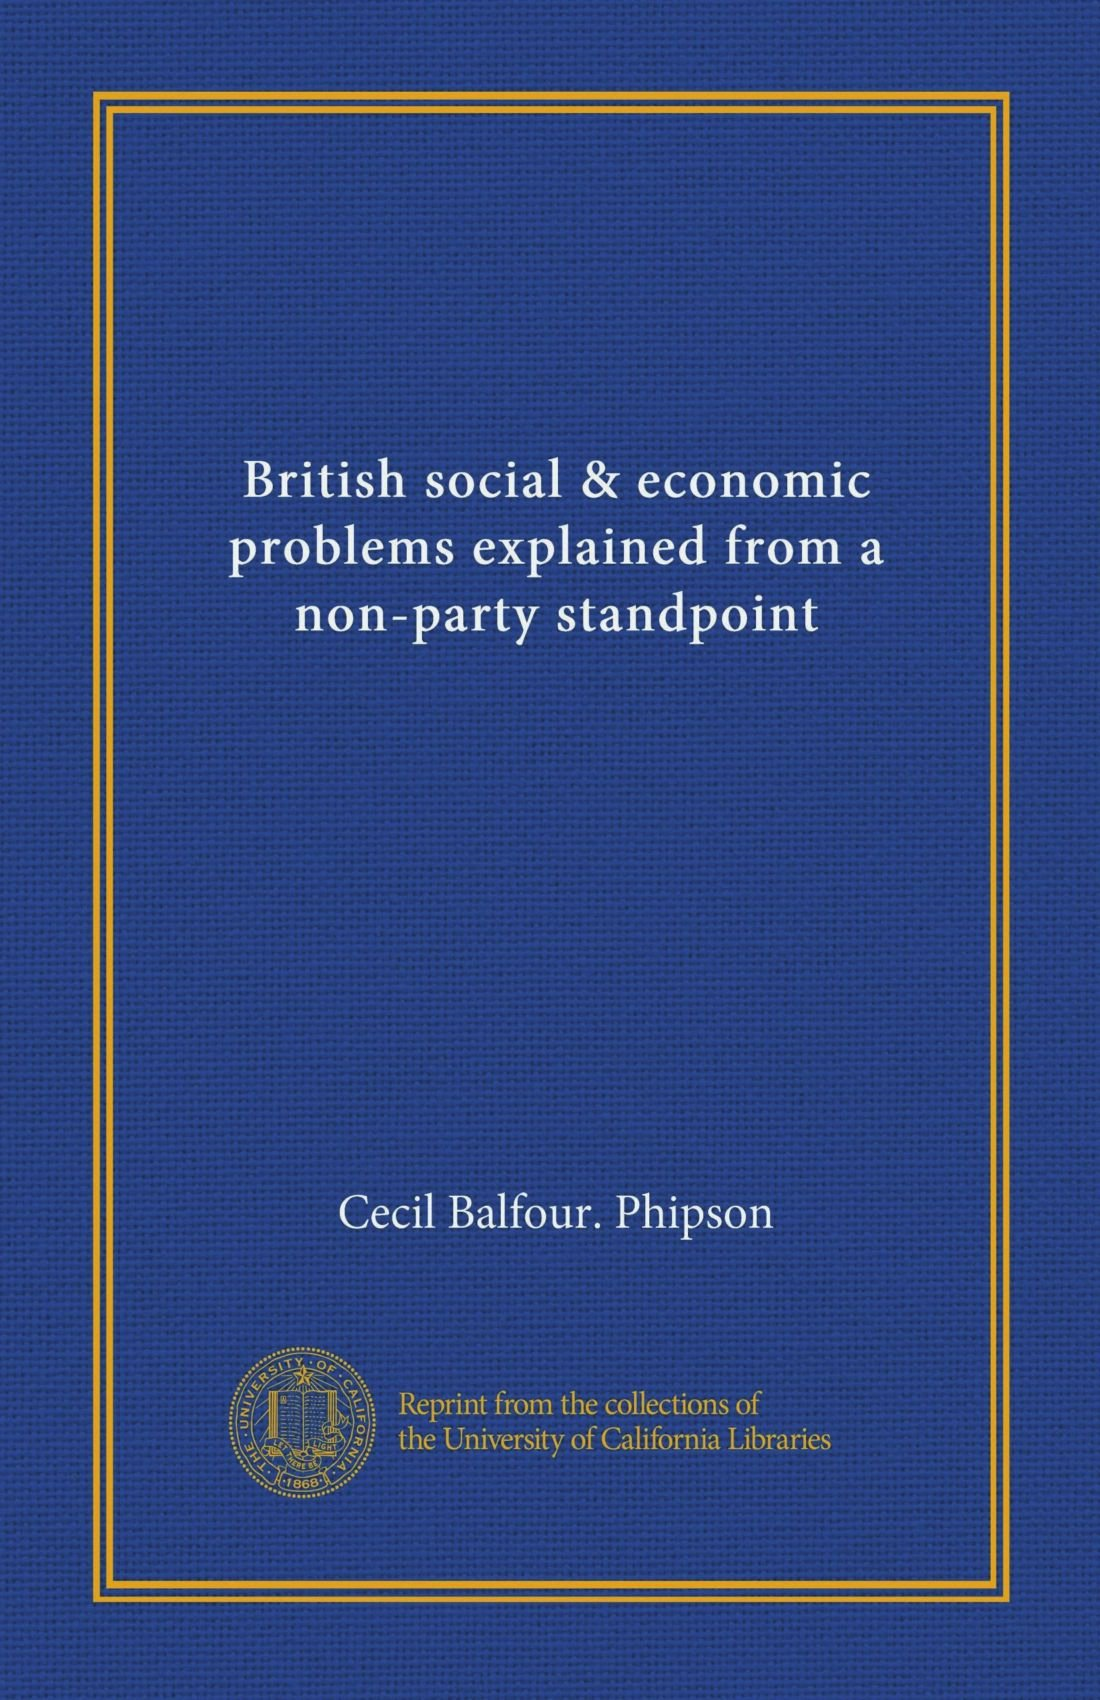 Download British social & economic problems explained from a non-party standpoint PDF